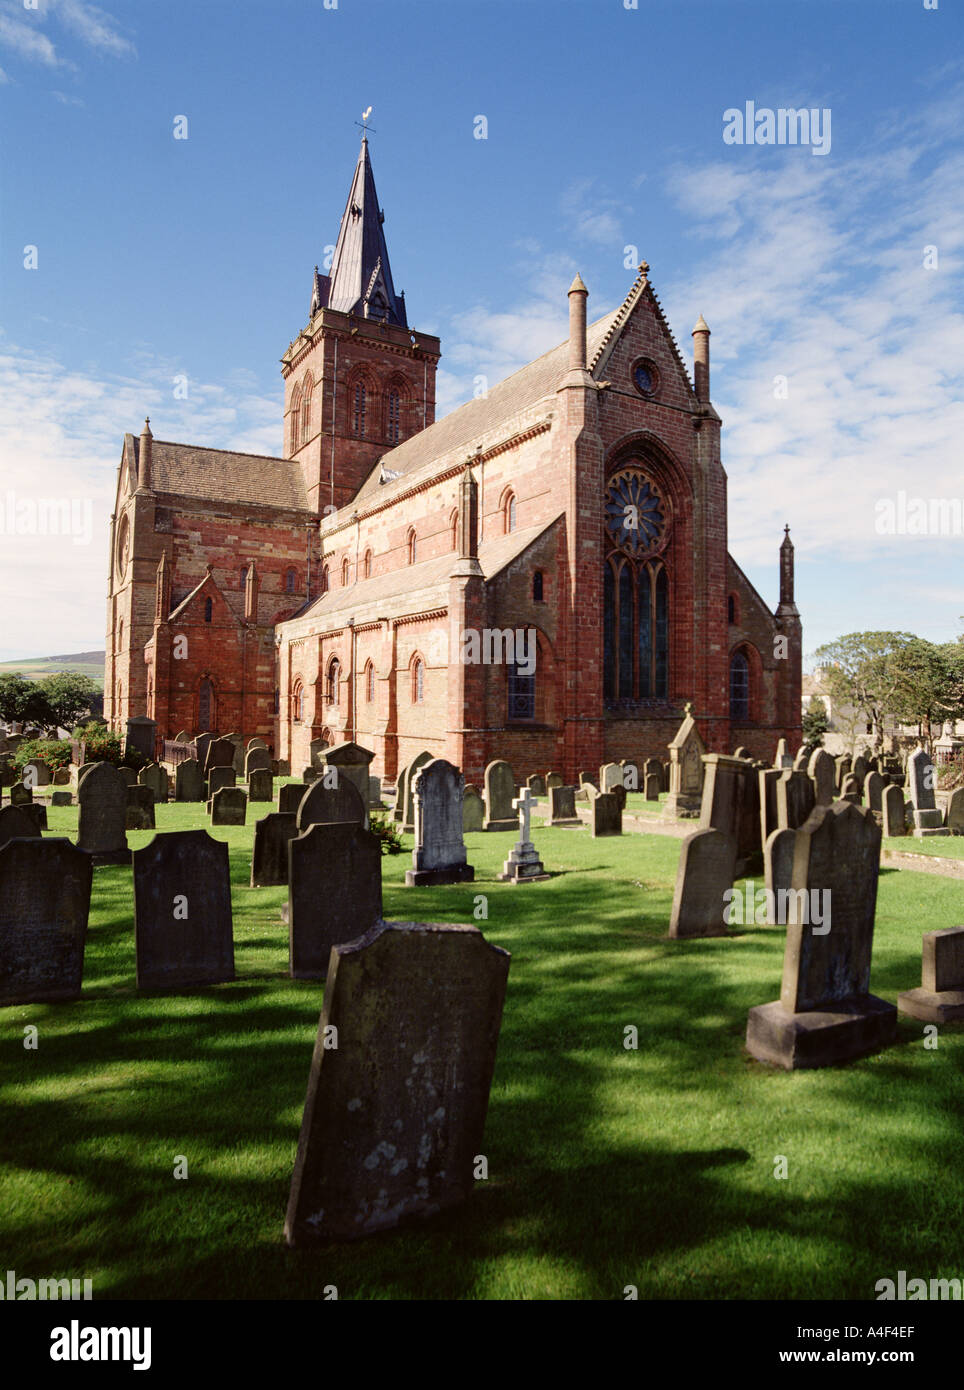 dh St Magnus Cathedral KIRKWALL ORKNEY Cathedral building and graveyard orkneys Stock Photo